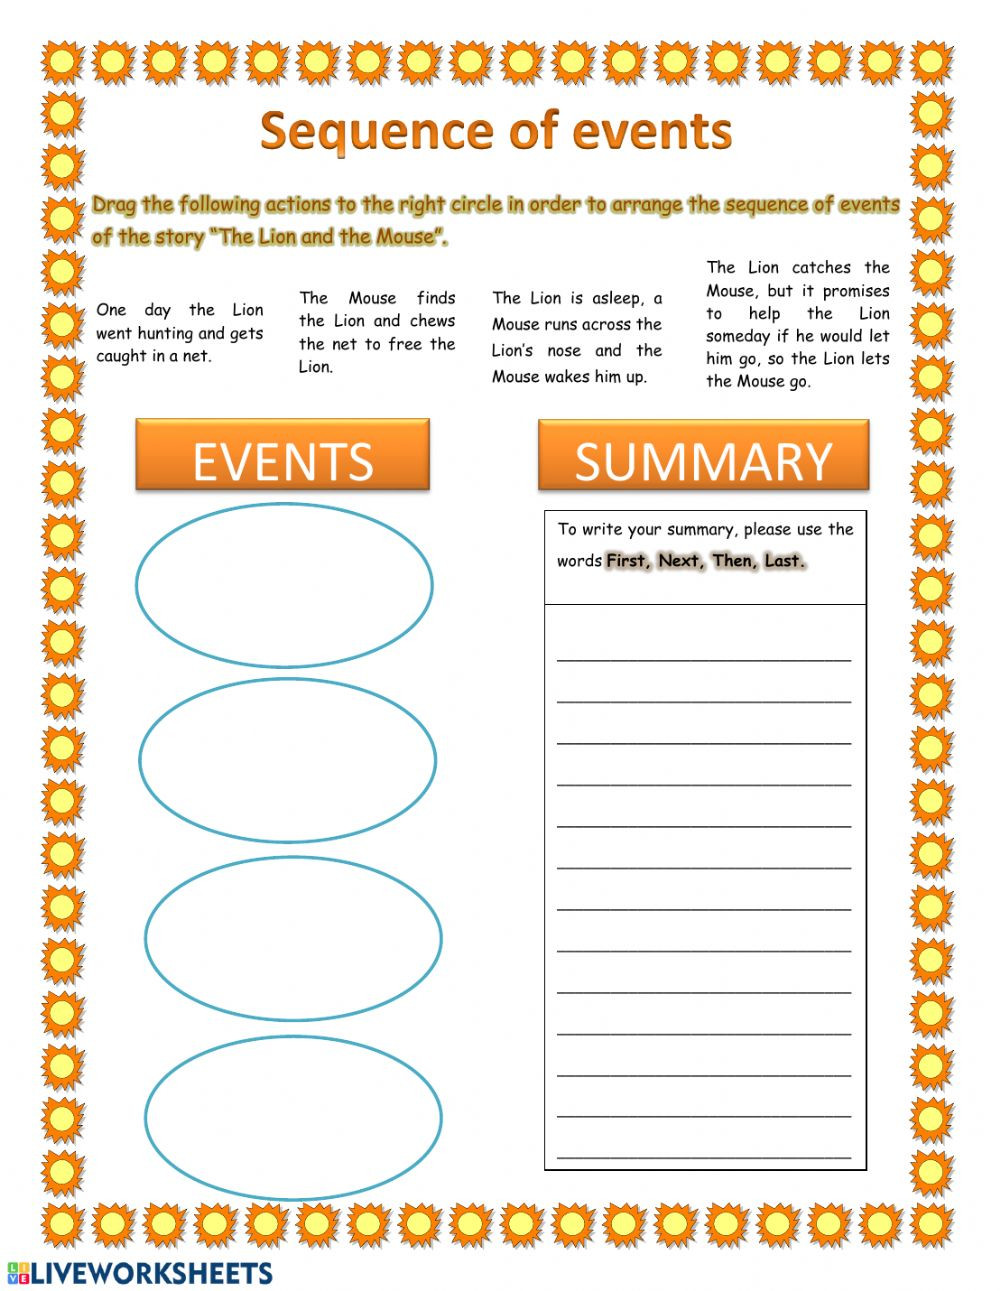 Sequence Worksheets 4th Grade Sequence Of events and Summary Interactive Worksheet